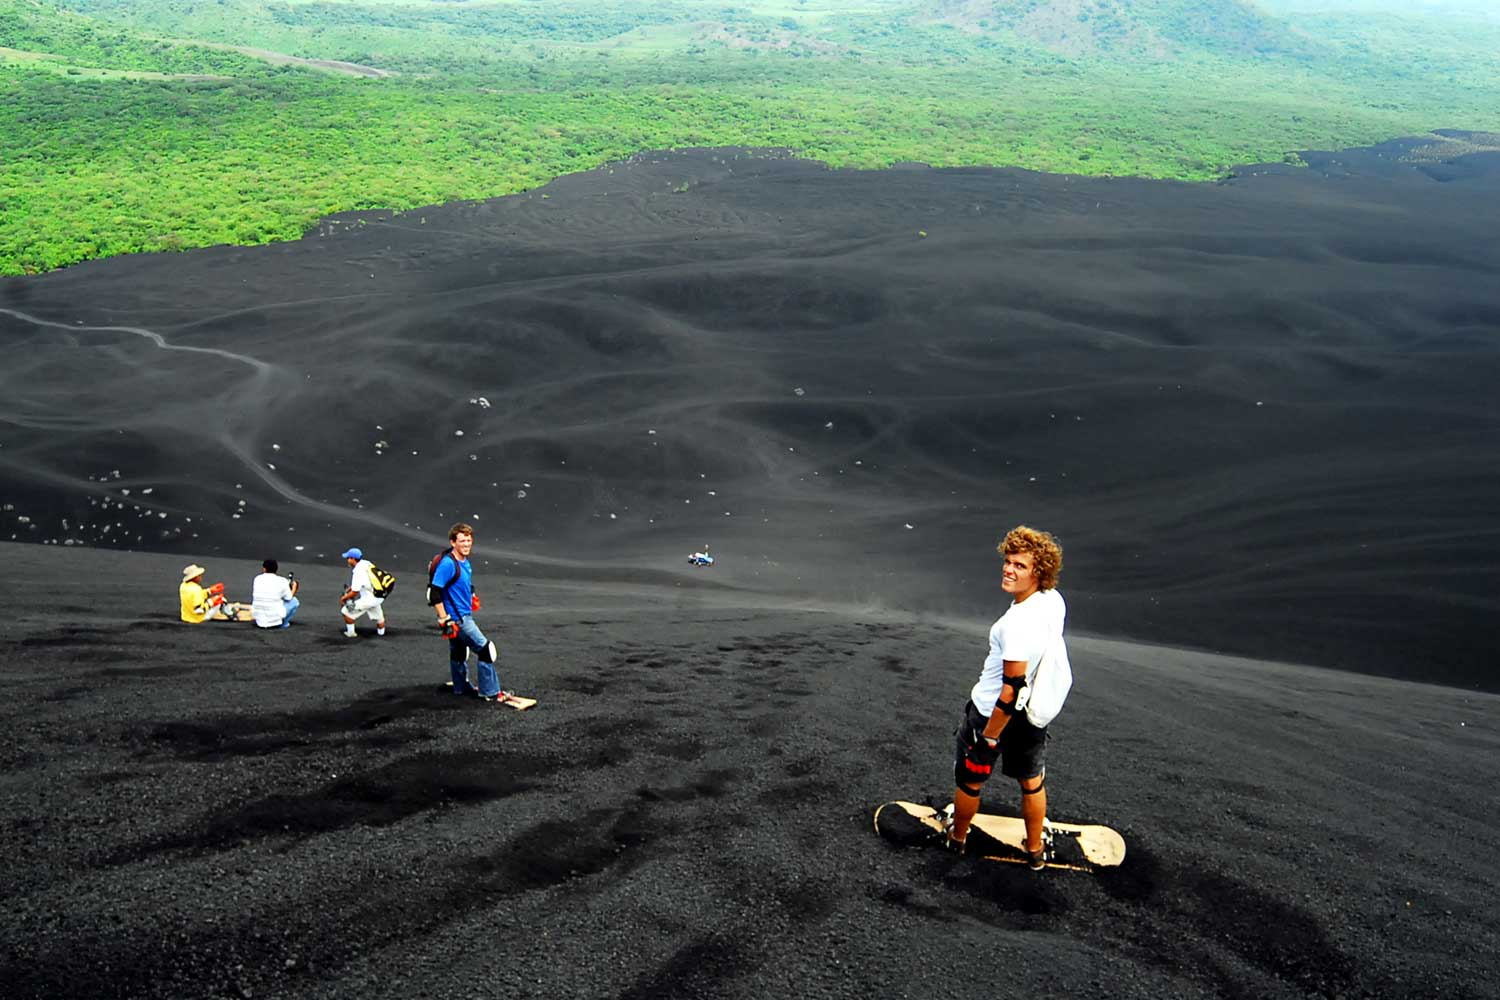 Extreme sports enthusiasts boarding down the basaltic cone of Cerro Negro Volcano in the outskirts of Leon, Nicaragua.